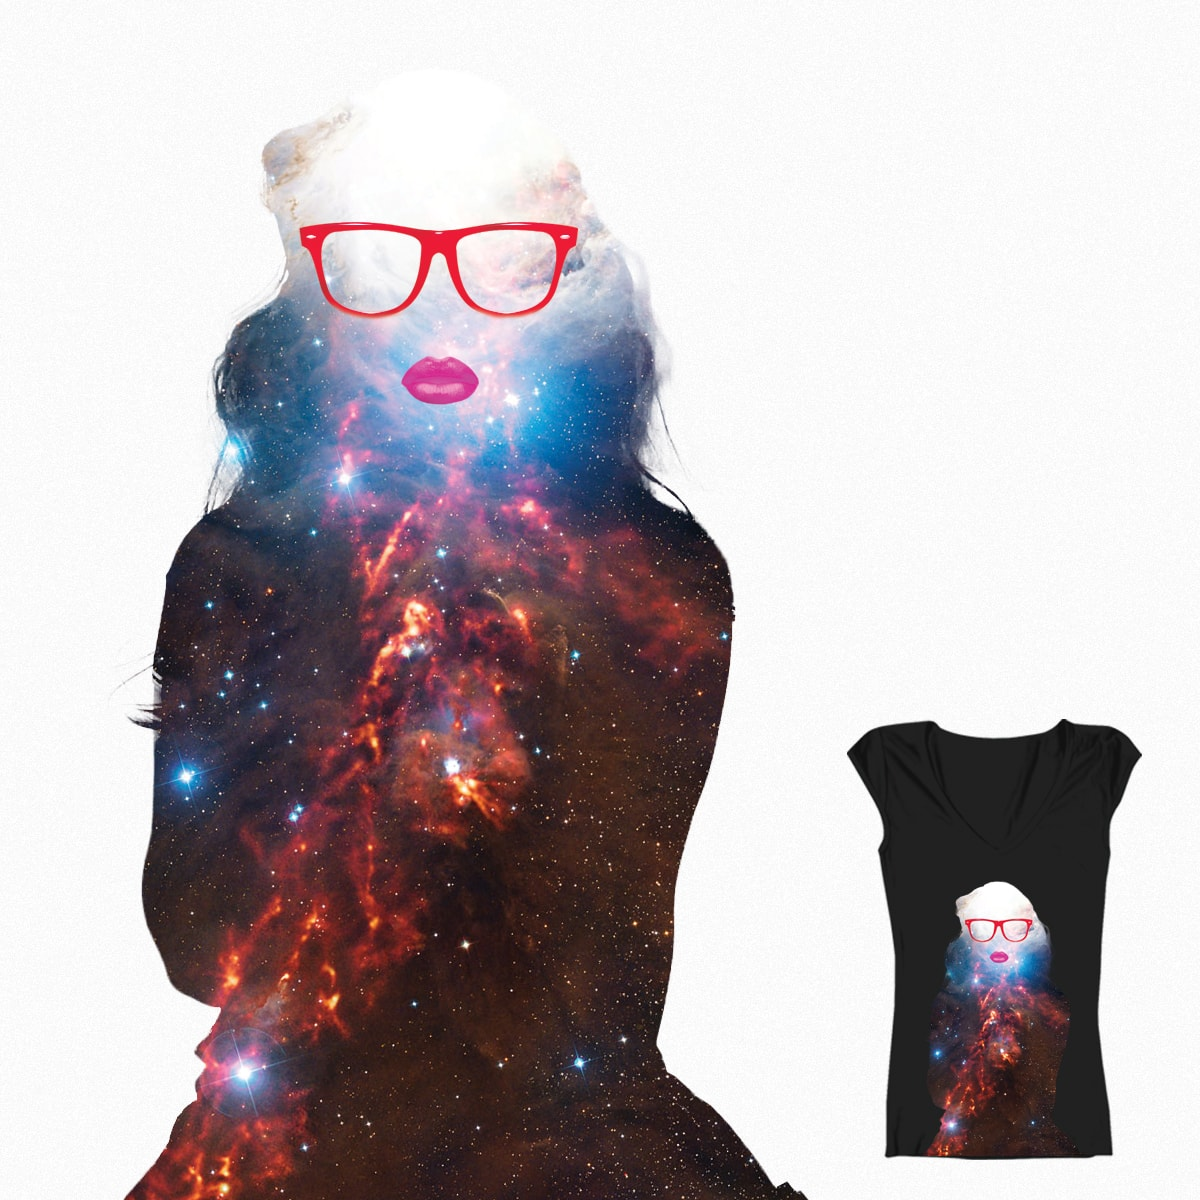 Space Chick by IngeniousArtist on Threadless